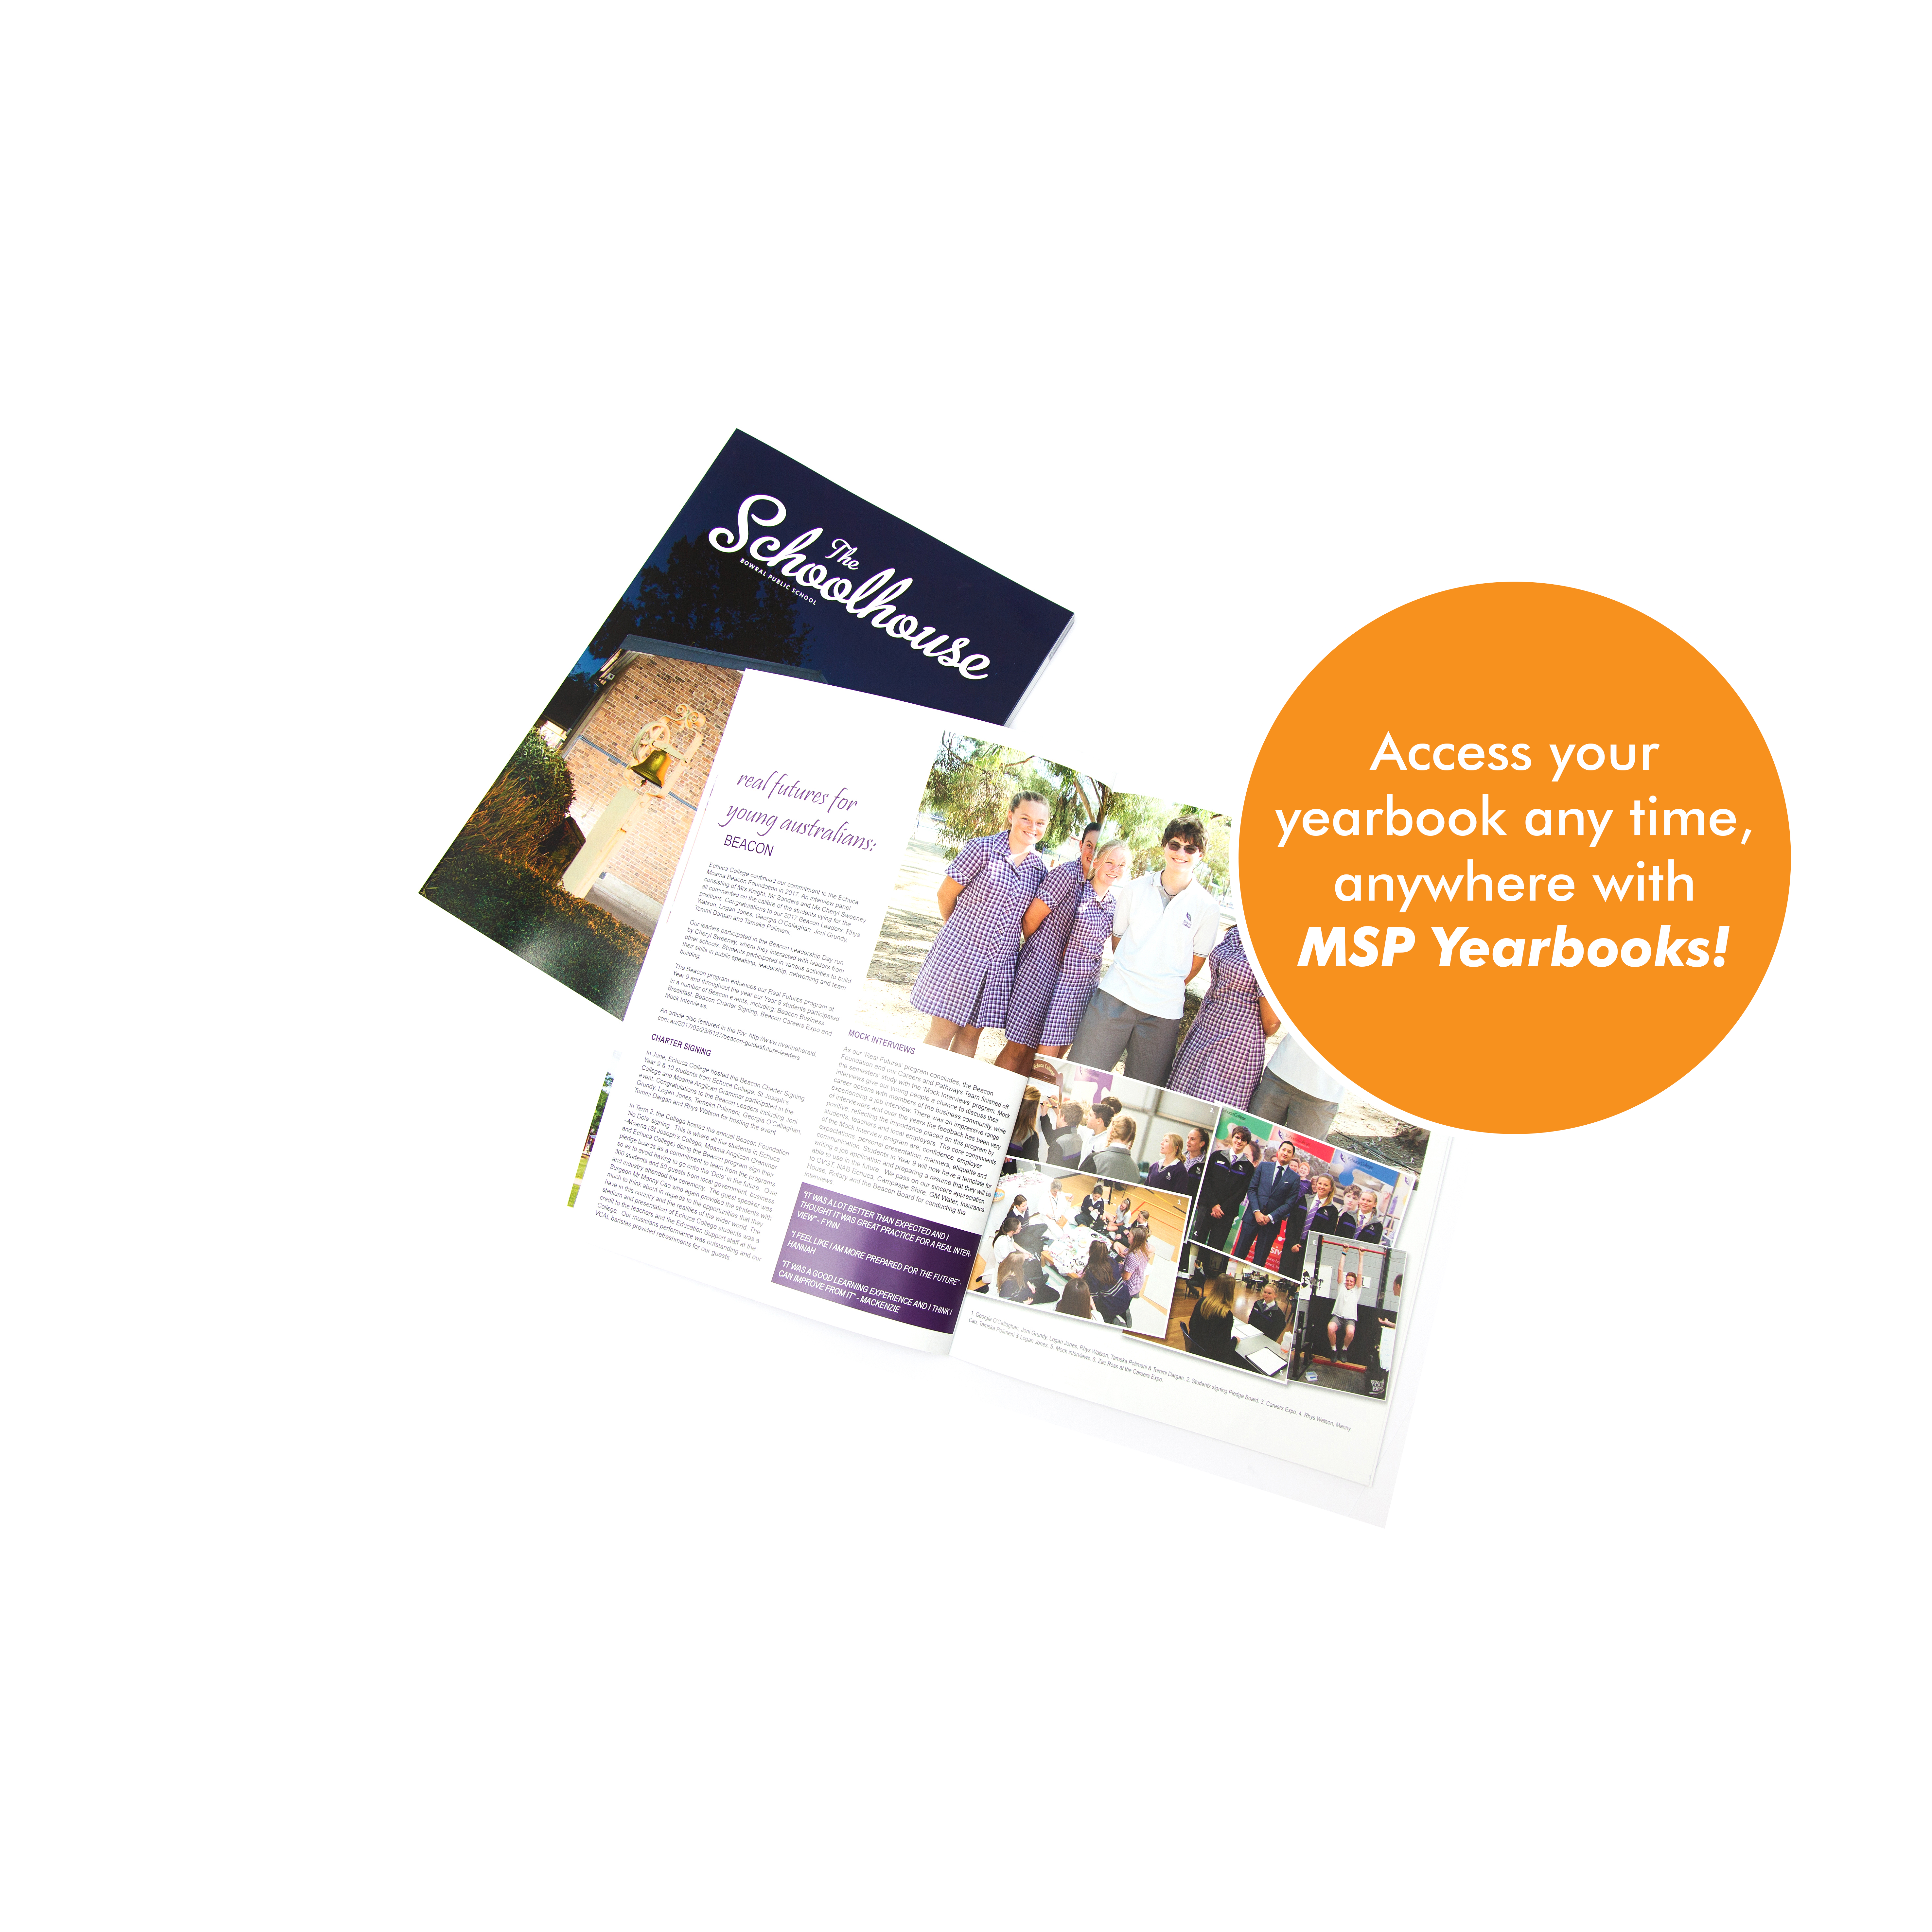 Msp yearbooks products. Yearbook clipart generic jpg royalty free download